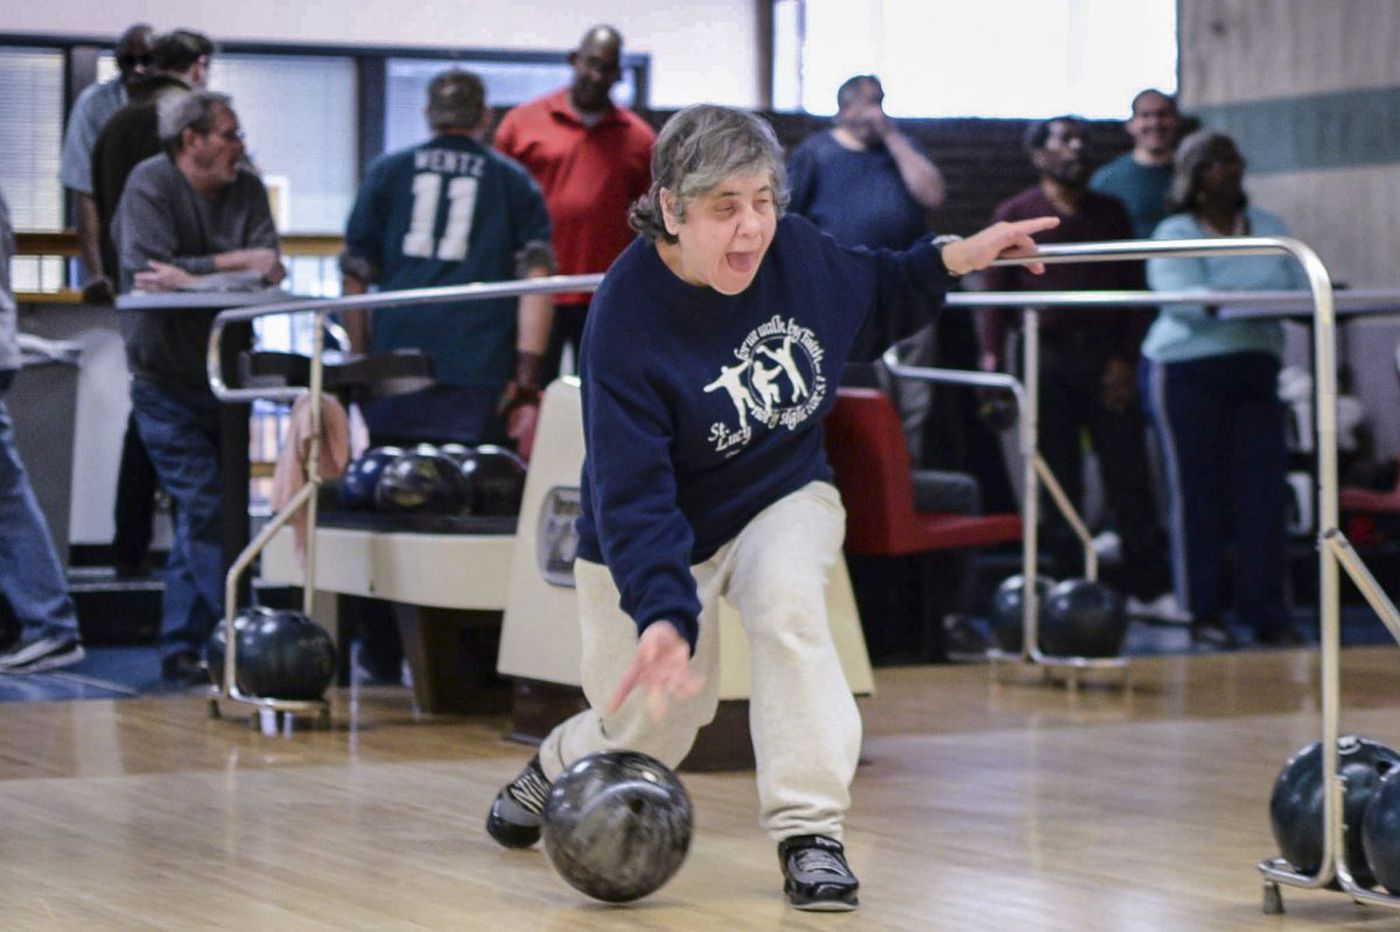 blind bowlers find their own lane in ne philly